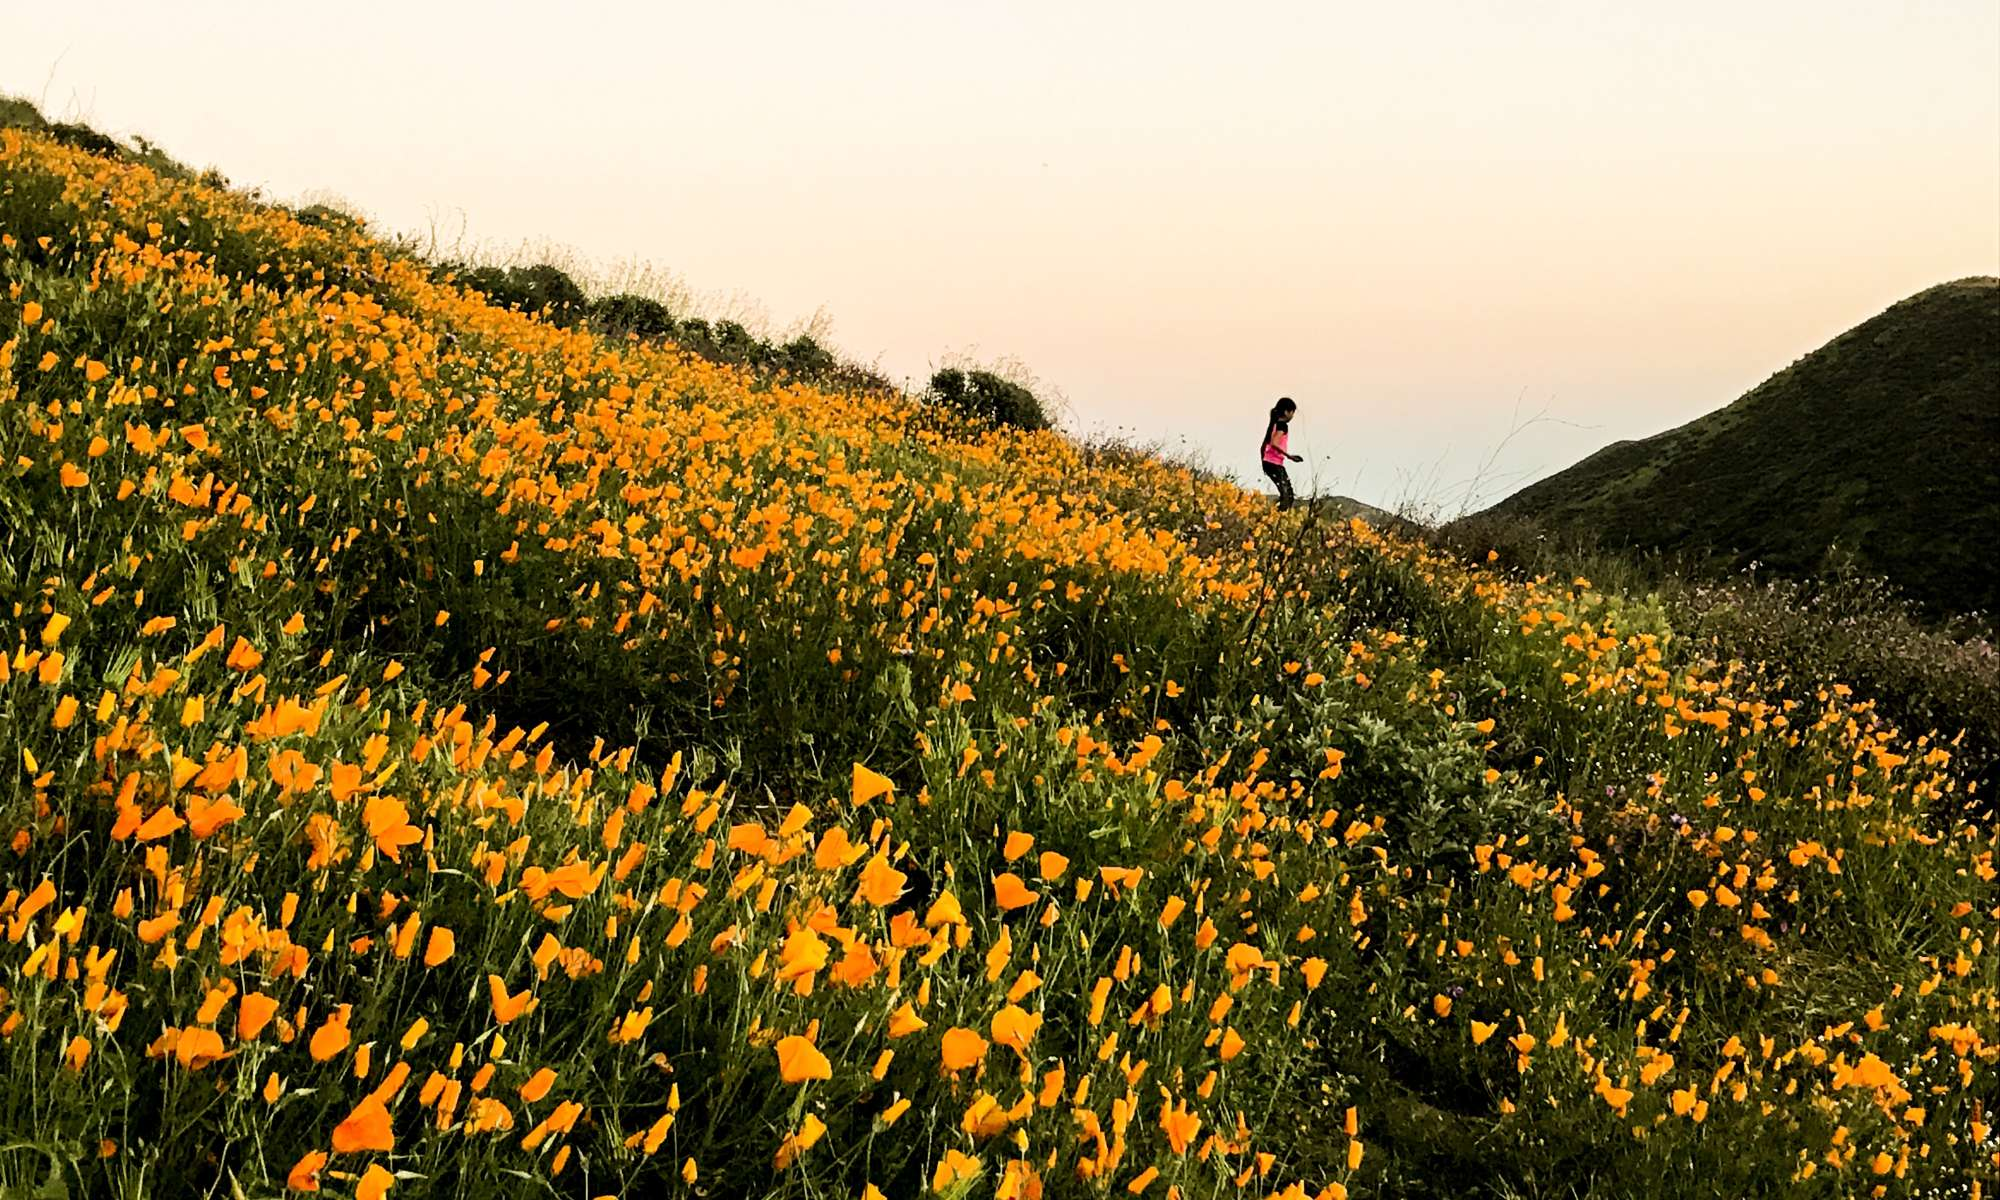 The Best Photos from the 2017 Superbloom